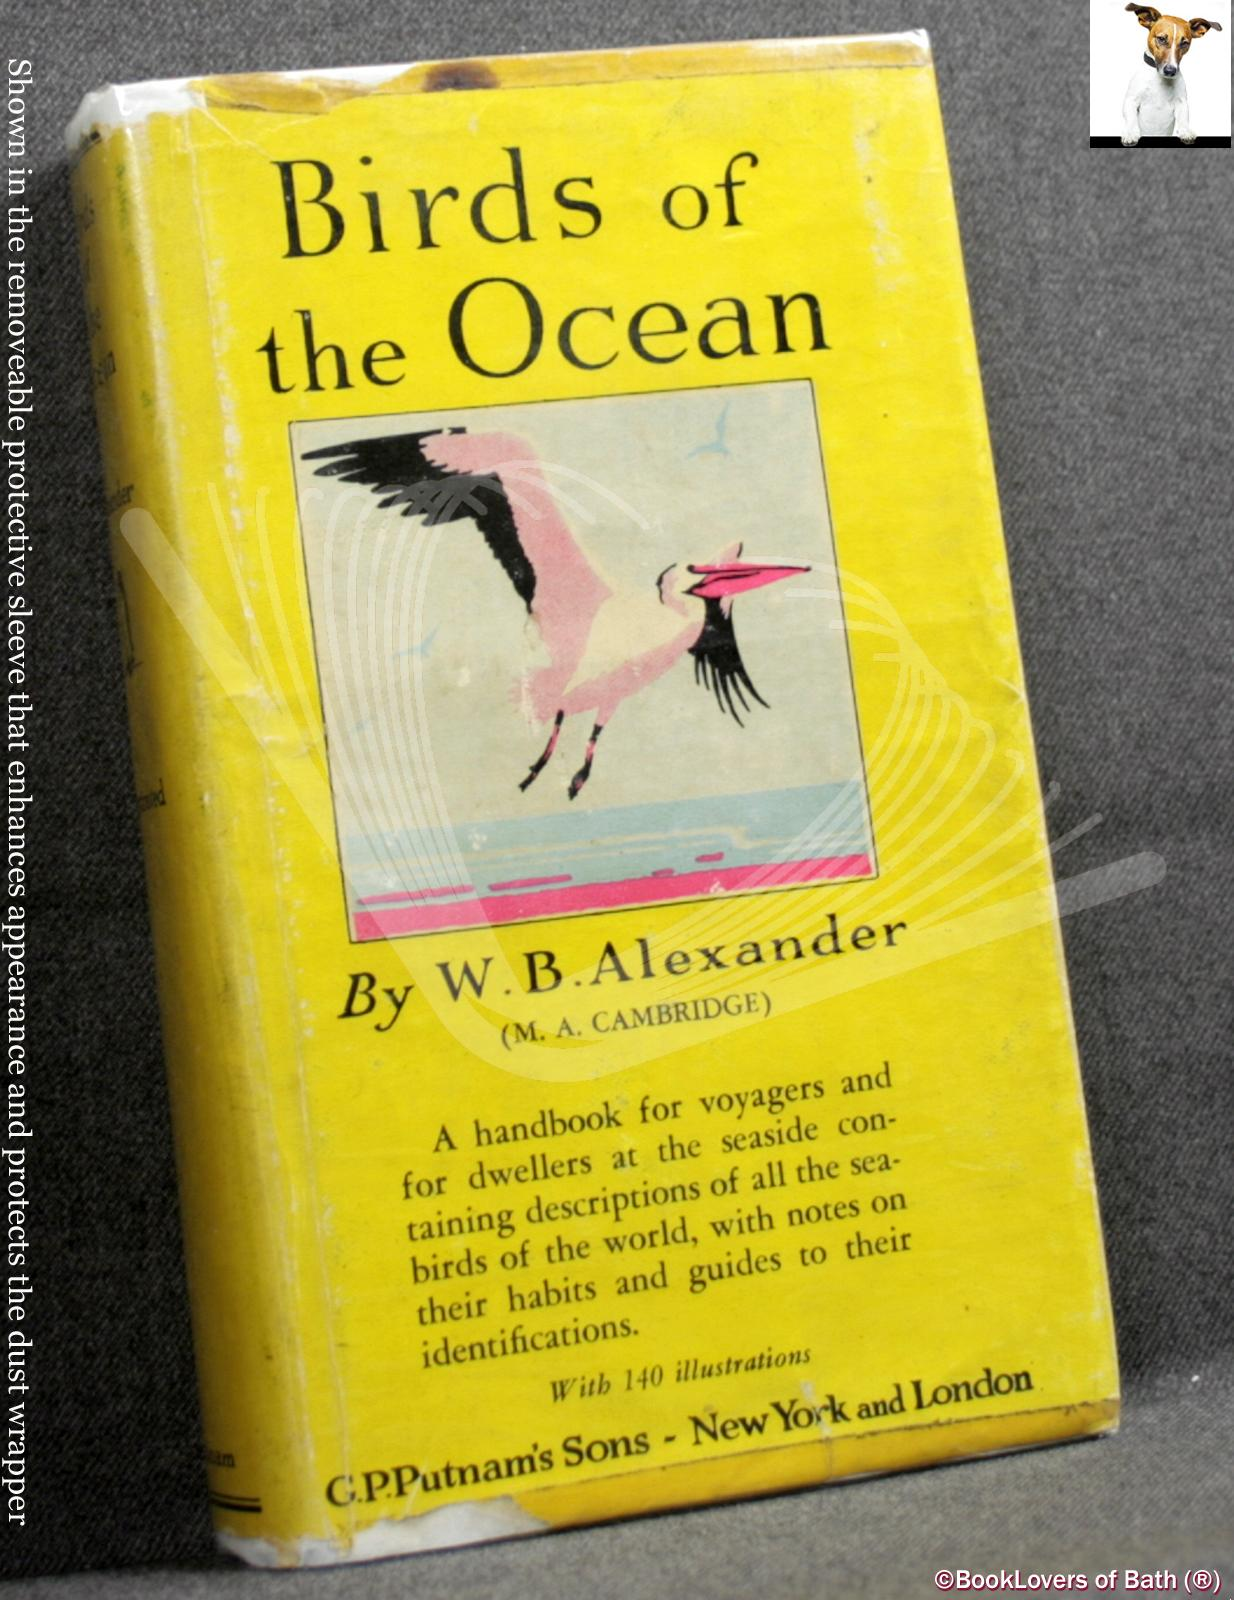 Birds of the Ocean: A Handbook for Voyagers and for Dwellers at the Seaside Containing Descriptions of All the Seabirds of the World, with Notes on Their Habits and Guides to Their Identifications - W. B. Alexander